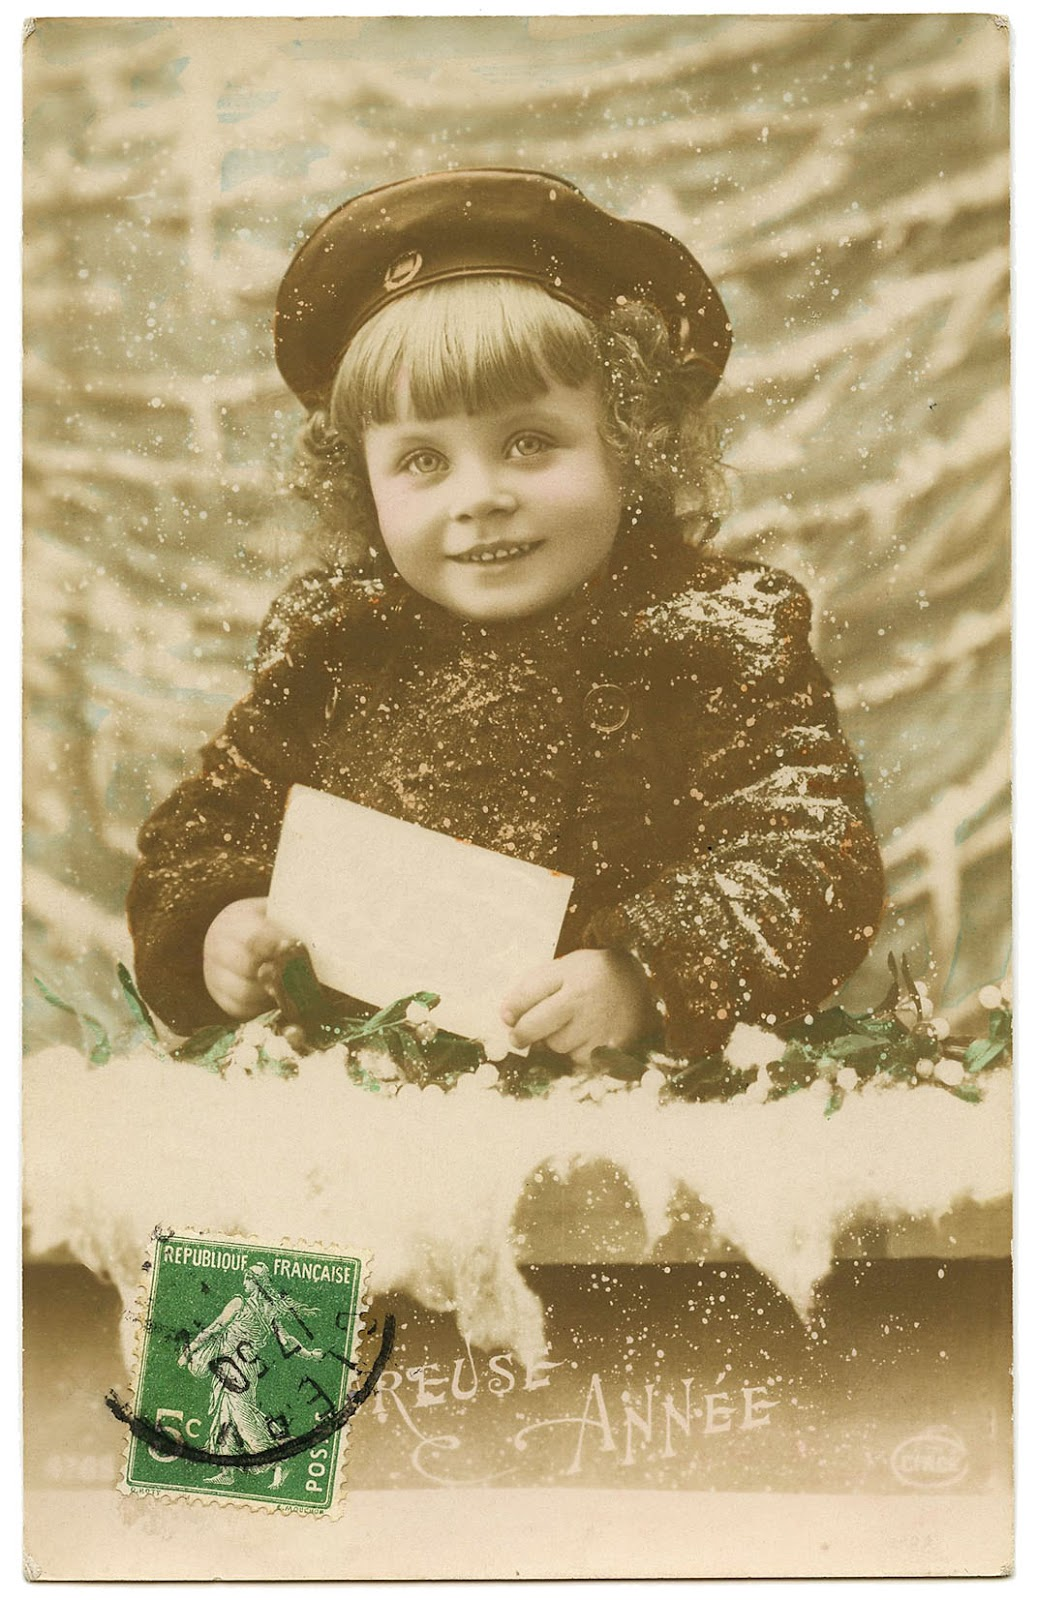 Vintage Angel with Baby Image - Beautiful! - The Graphics